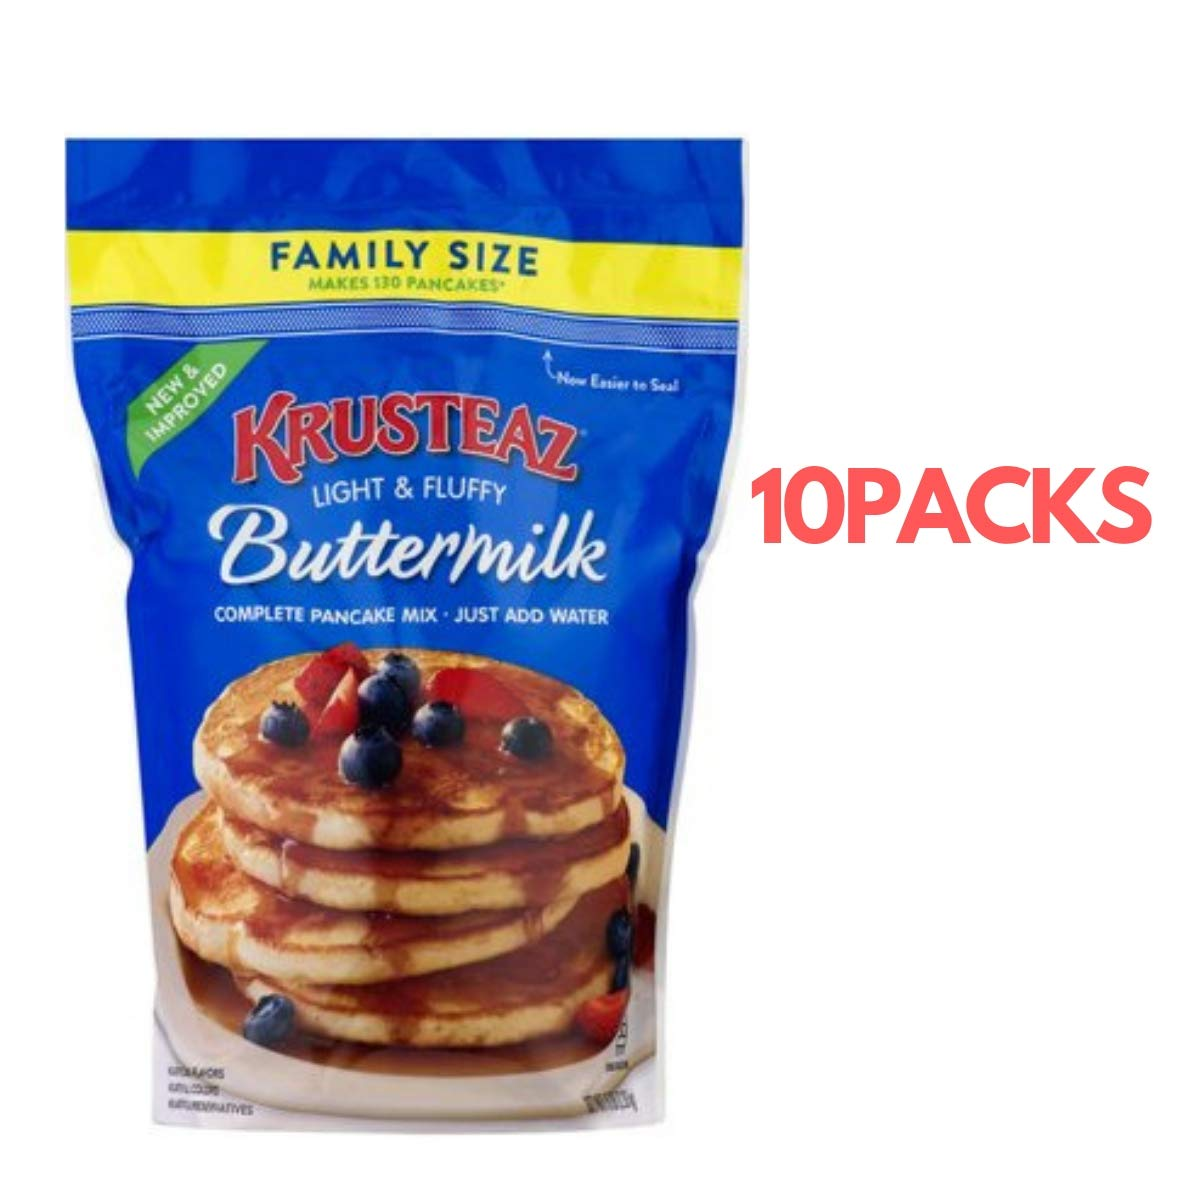 Krusteaz Pancake Mix, Complete, Buttermilk 5 lb (10Pack) by Krusteaz (Image #1)